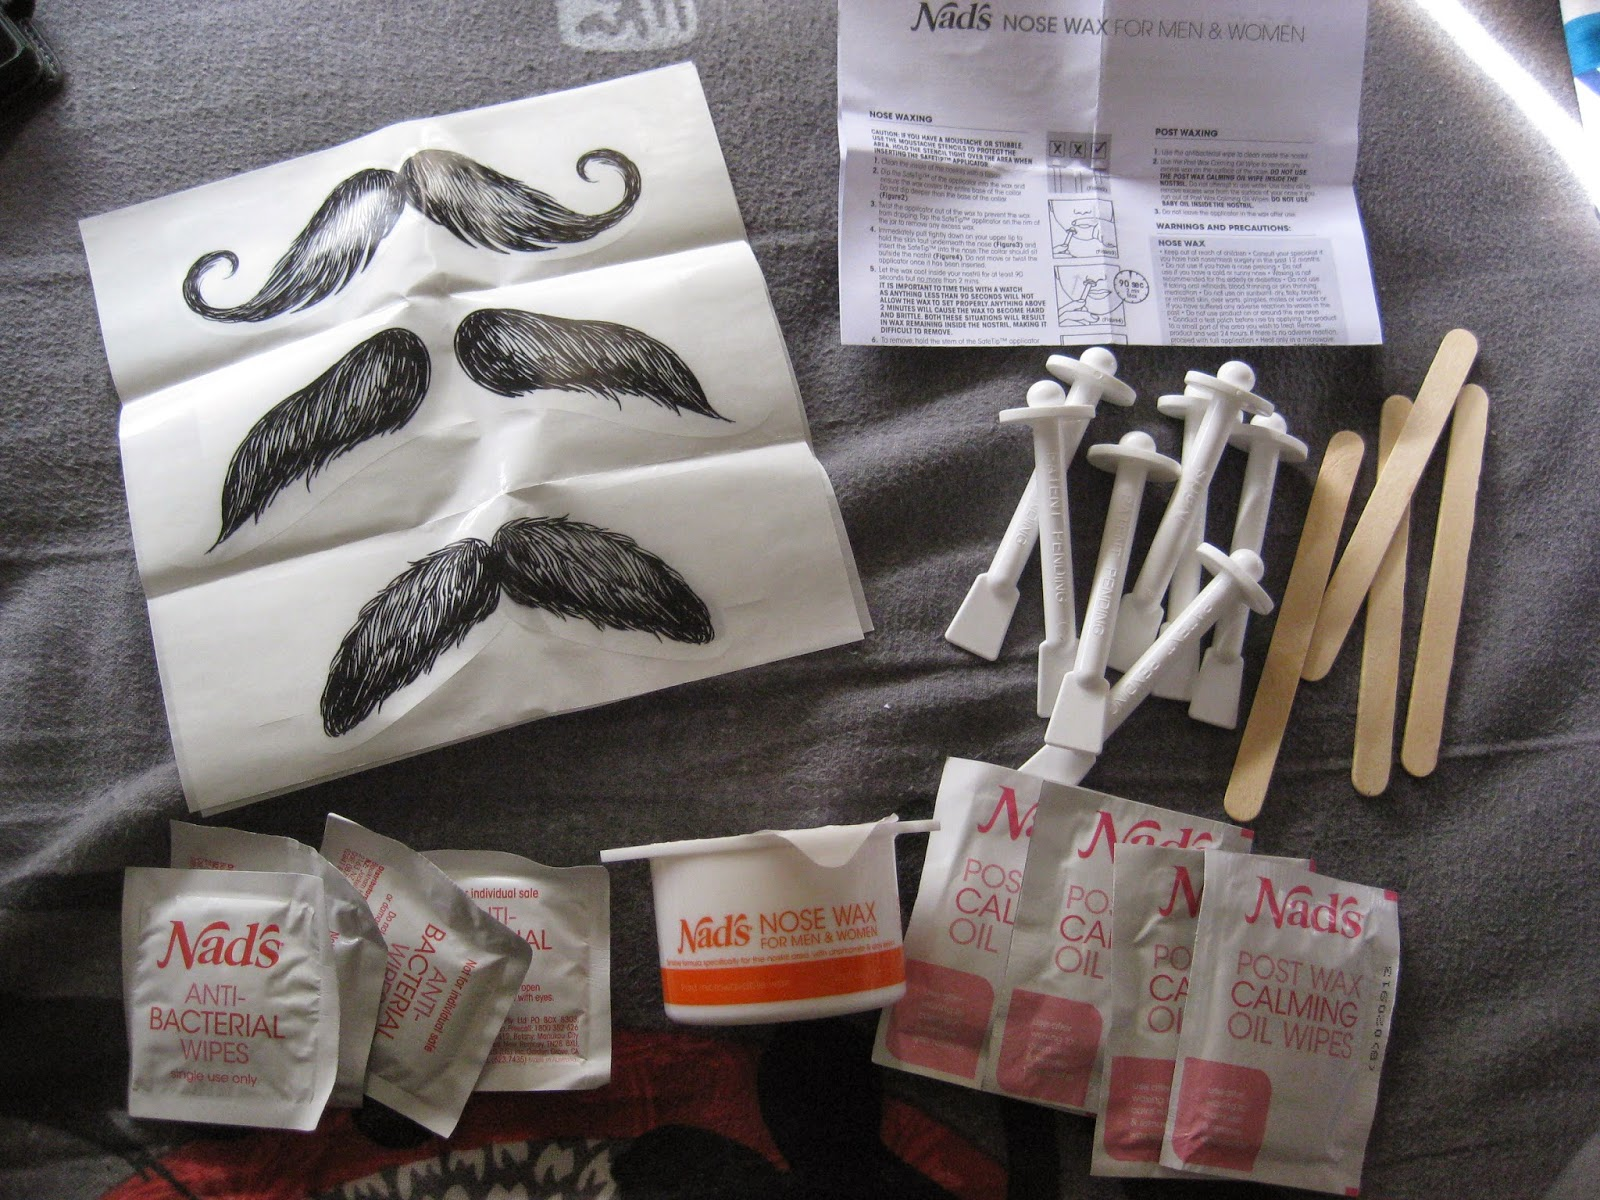 This Is The Most Organised Kit I Ve Ever Seen Wasn T Sure What Moustache Stickers Were For When First Saw Them Boyfriend Thought It Might Be An